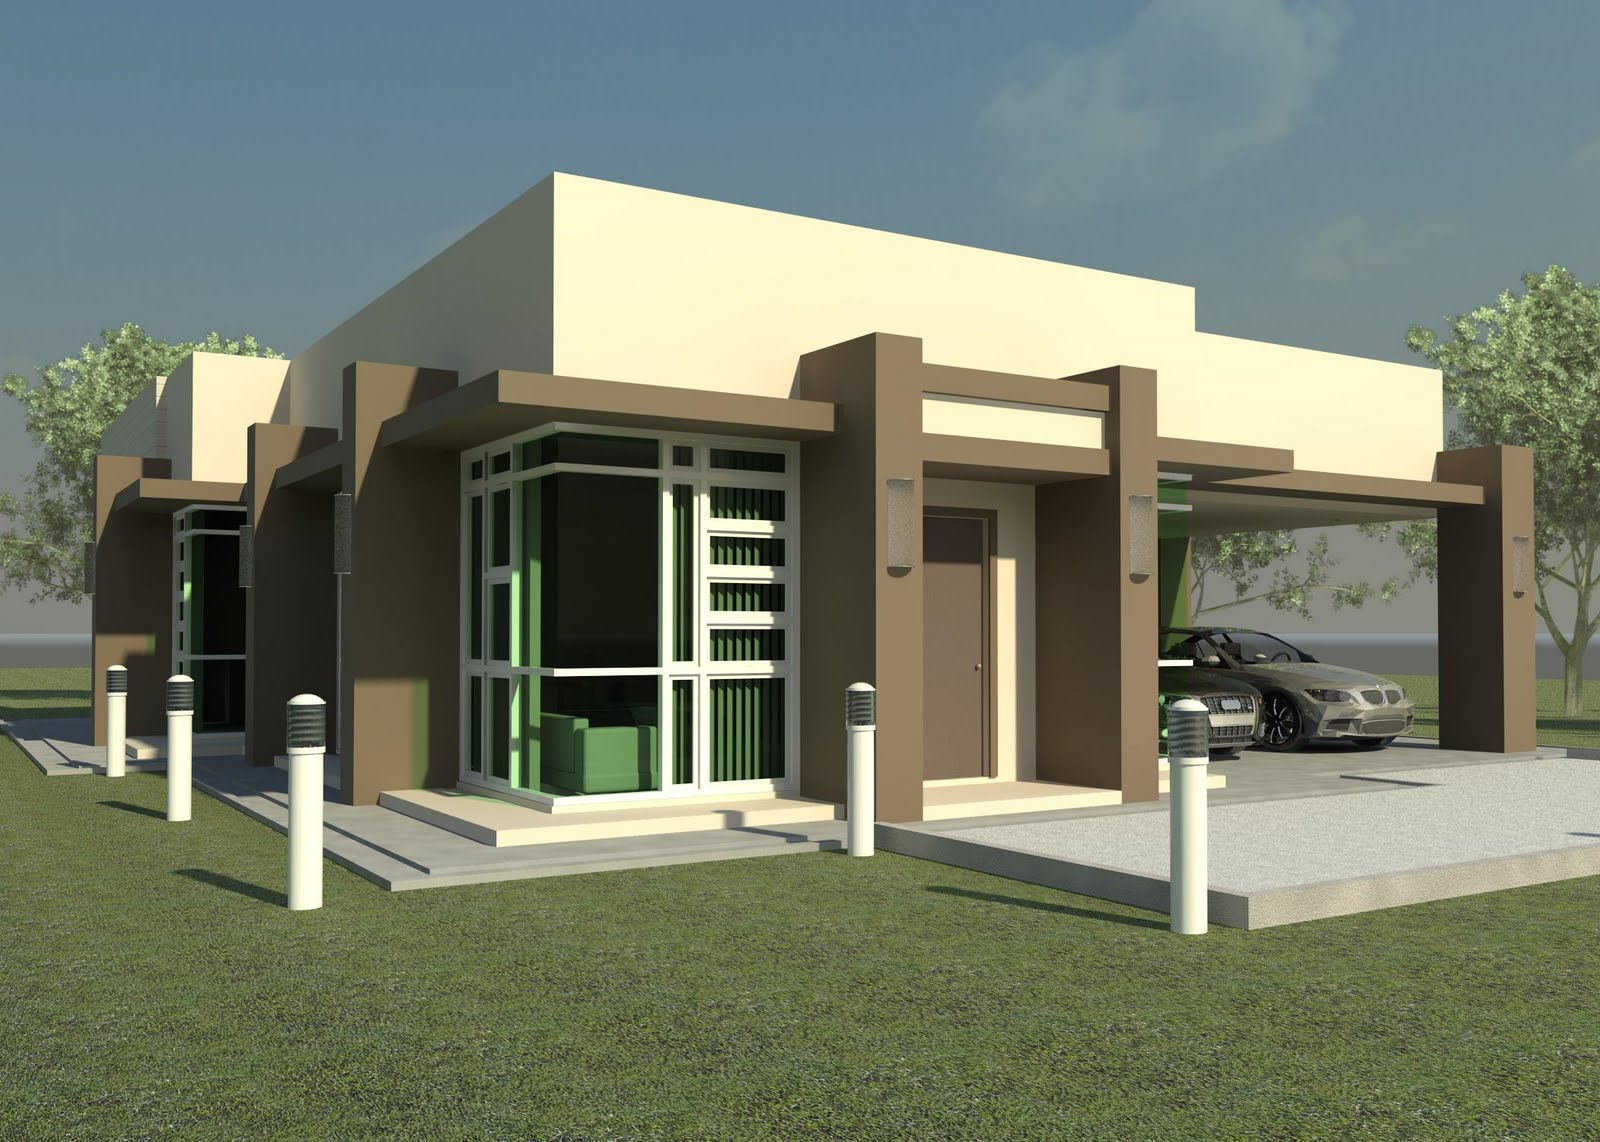 New home designs latest modern homes beautiful single storey designs ideas Design home modern